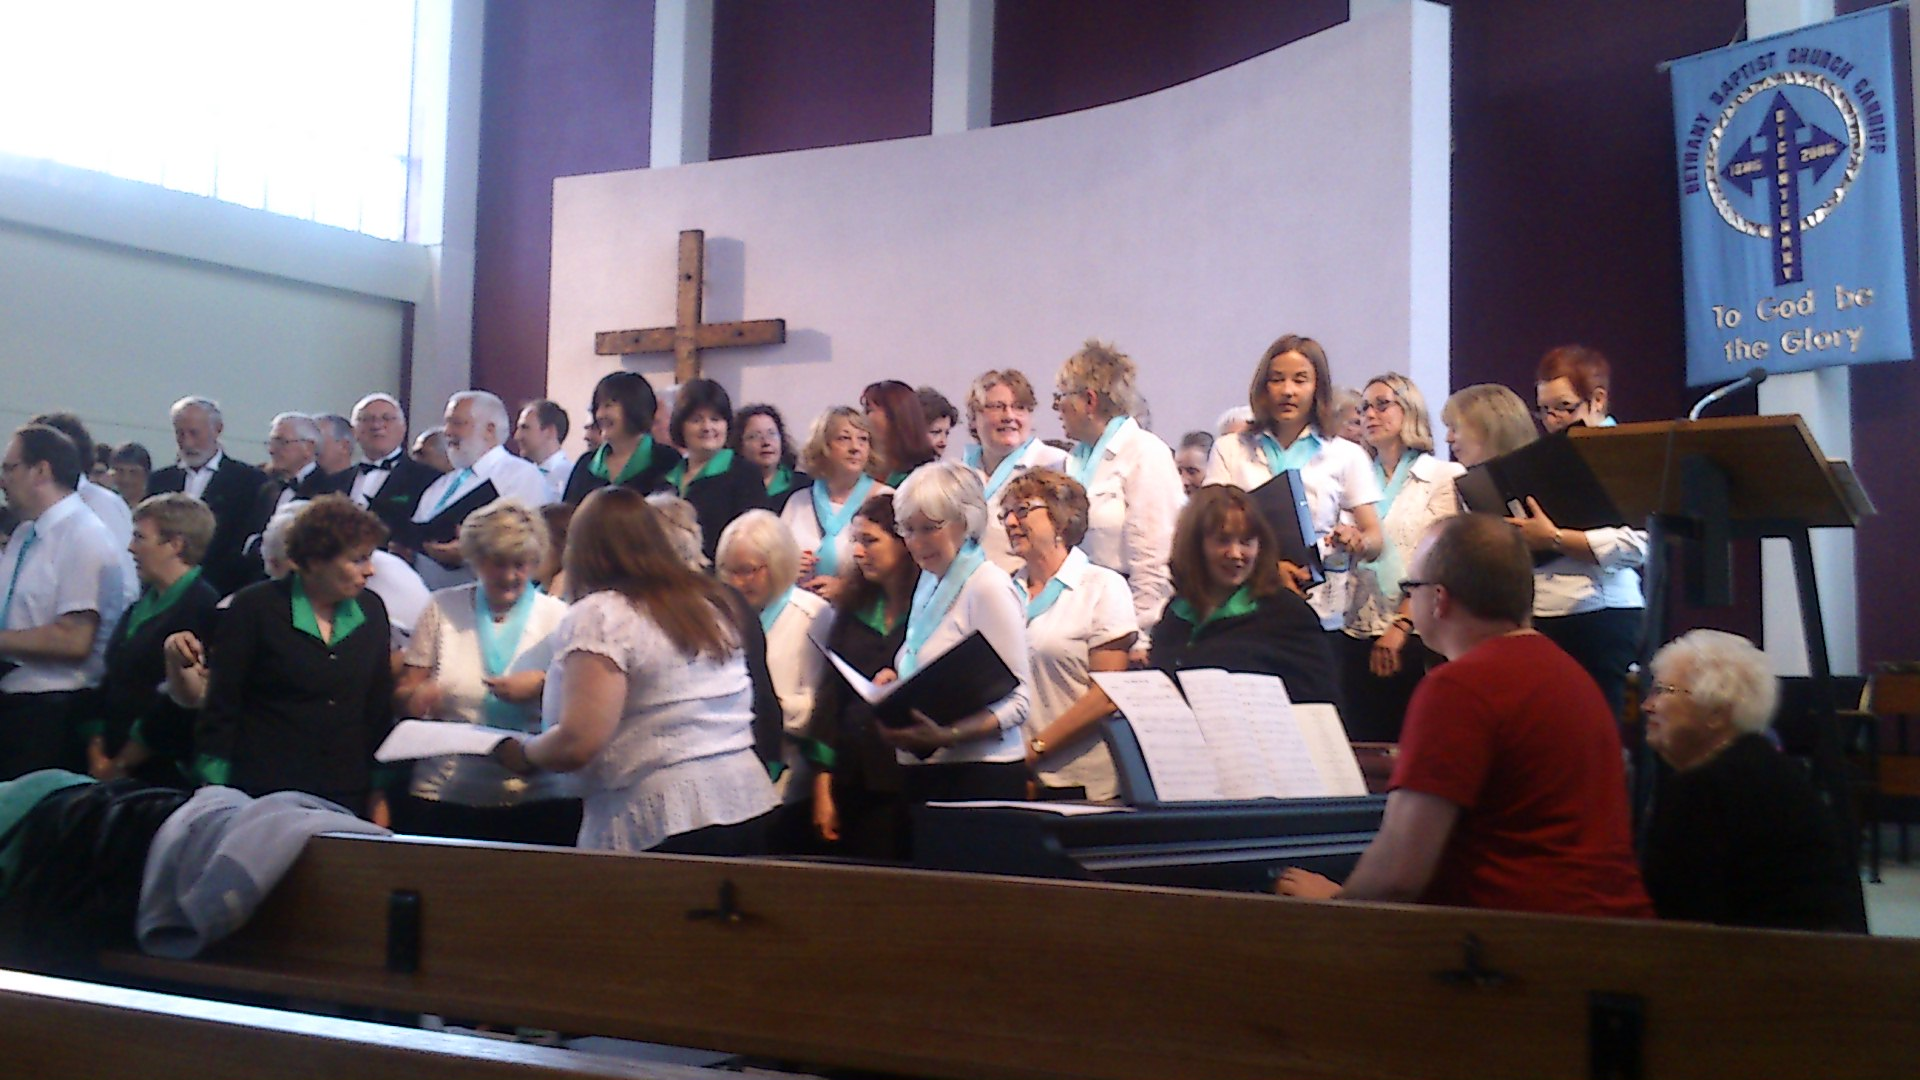 two choirs together 2